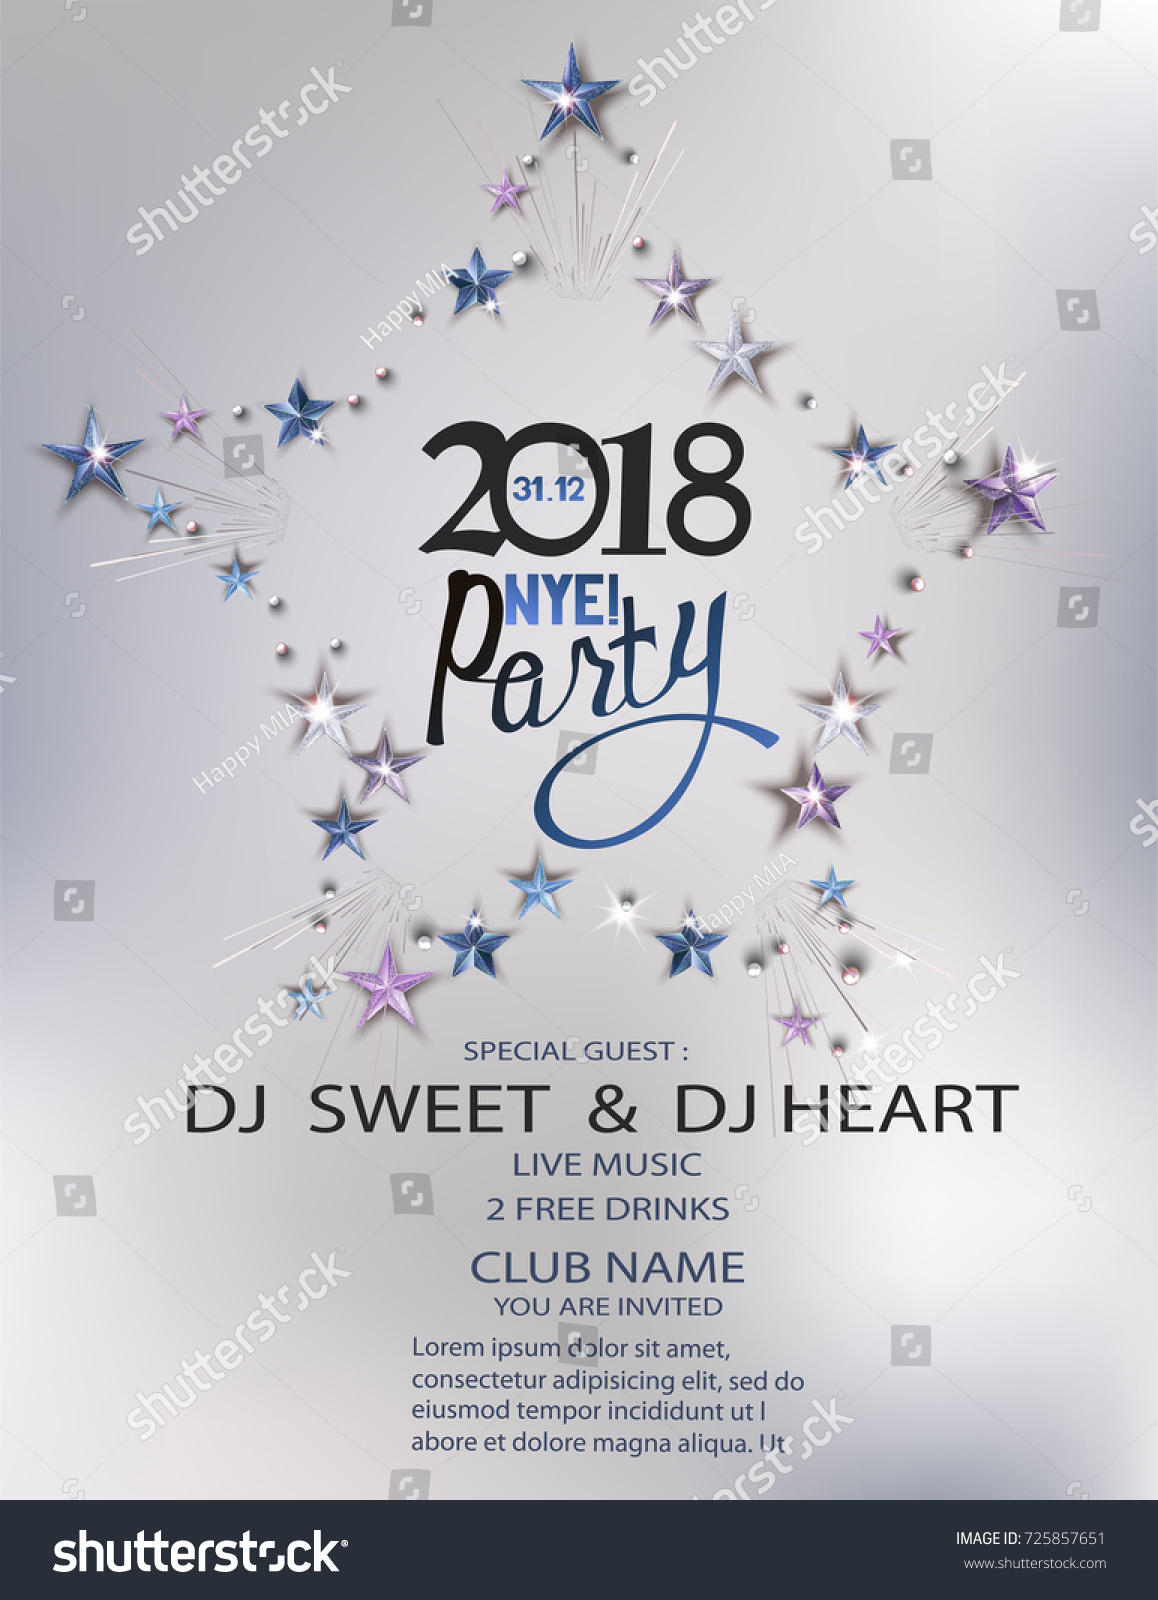 new year eve party invitation card with stars arranged in shape of star vector illustration